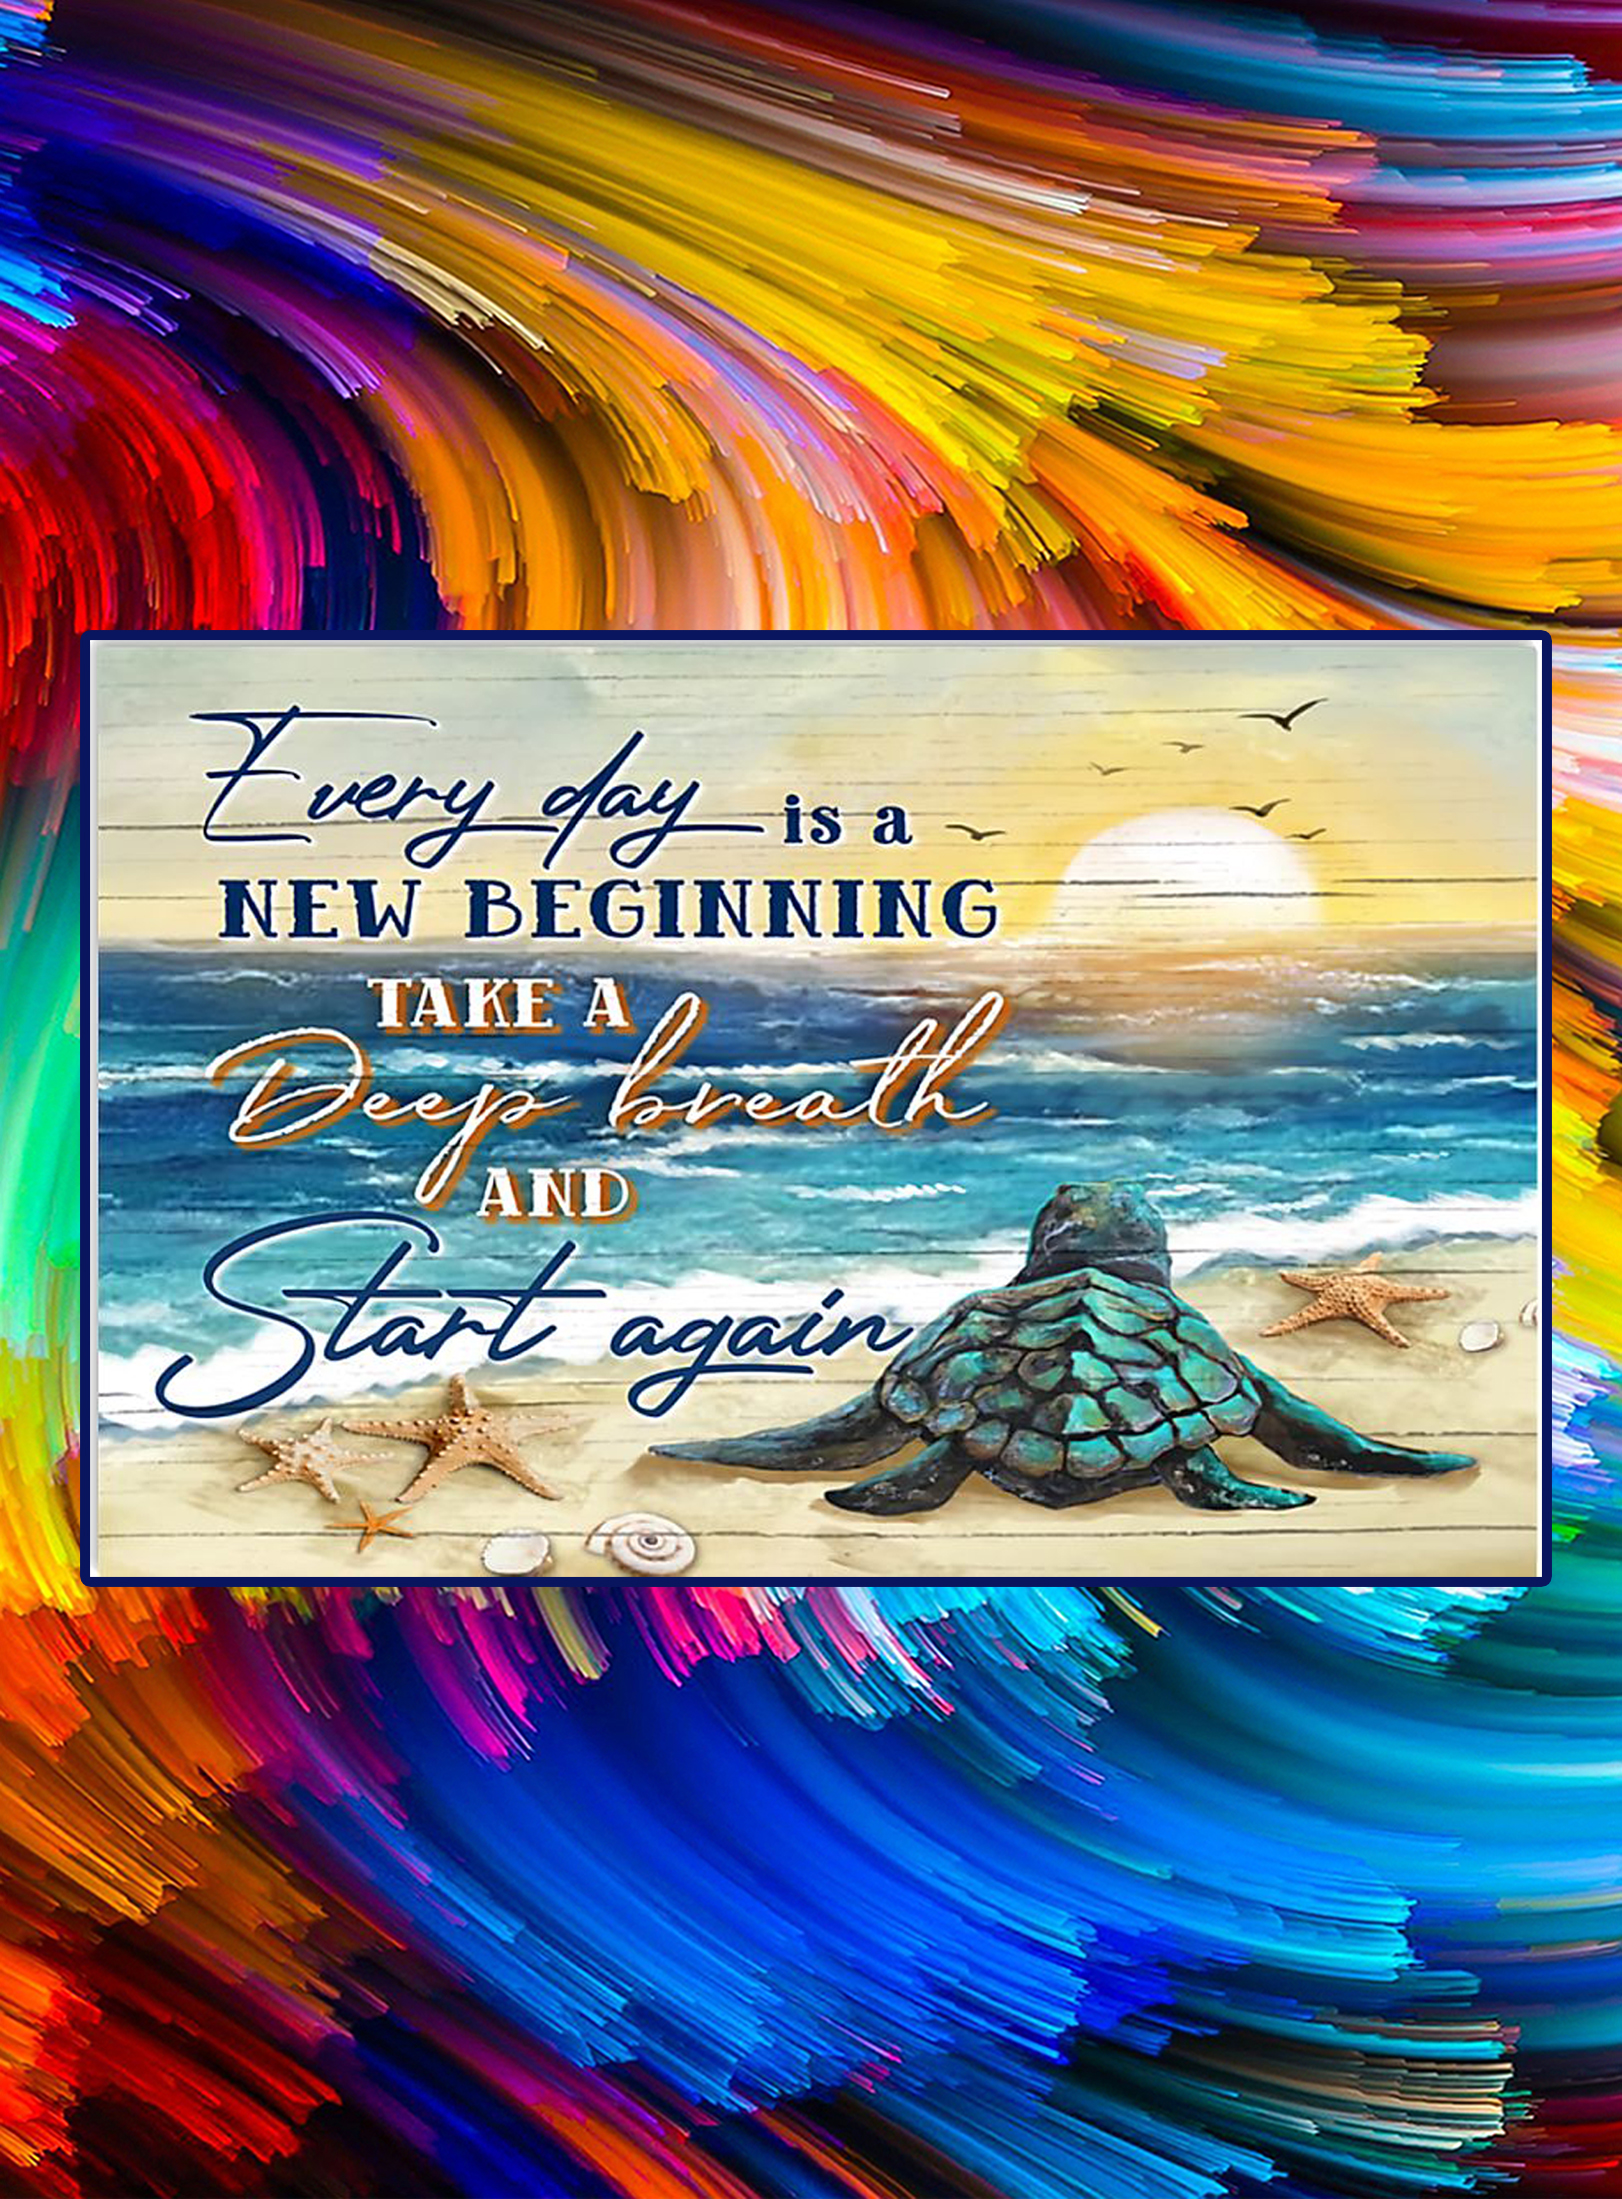 Turtle every day is a new beginning take a deep breath and start agTurtle every day is a new beginning take a deep breath and start again poster - A4ain poster - A4